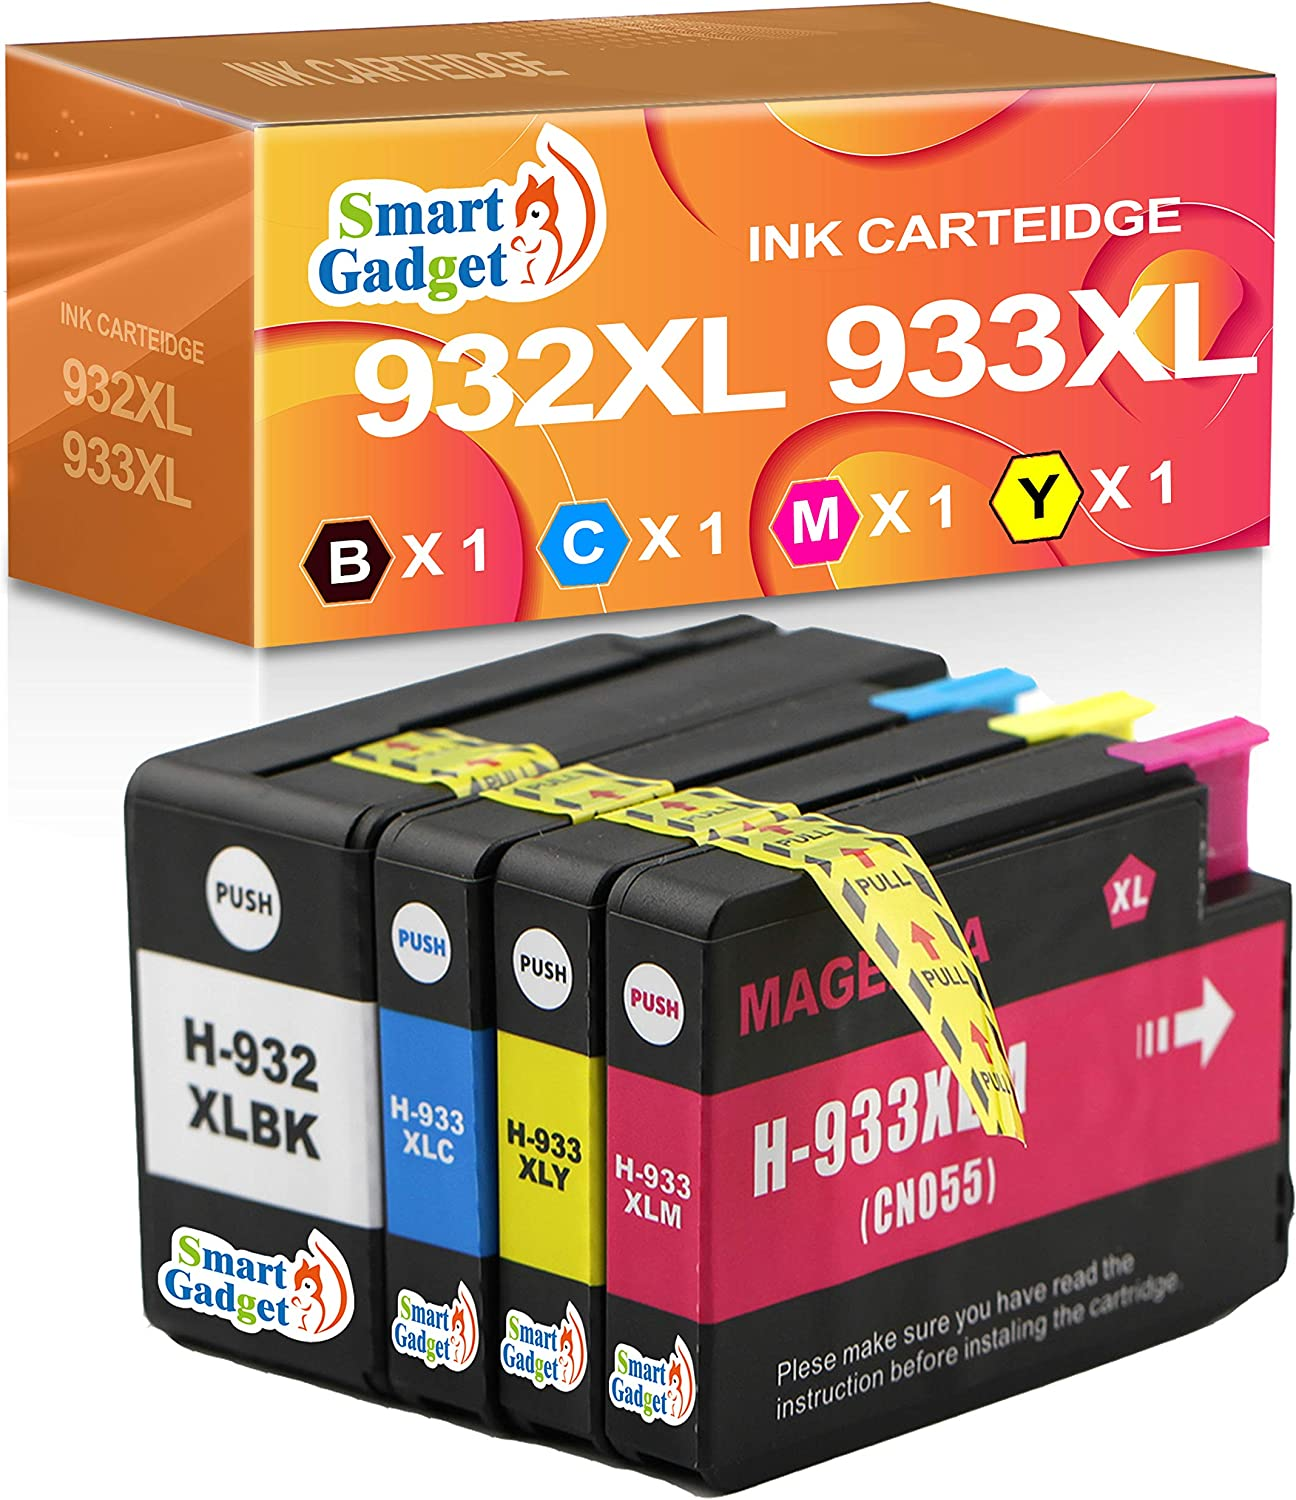 Smart Gadget Compatible Ink Cartridge Replacement for HP 932 933 932XL 933XL to use for Officejet 6100 6600 7612 7610 6700 7510 7110 Printer (4 Pack, Black,Cyan,Magenta,Yellow)